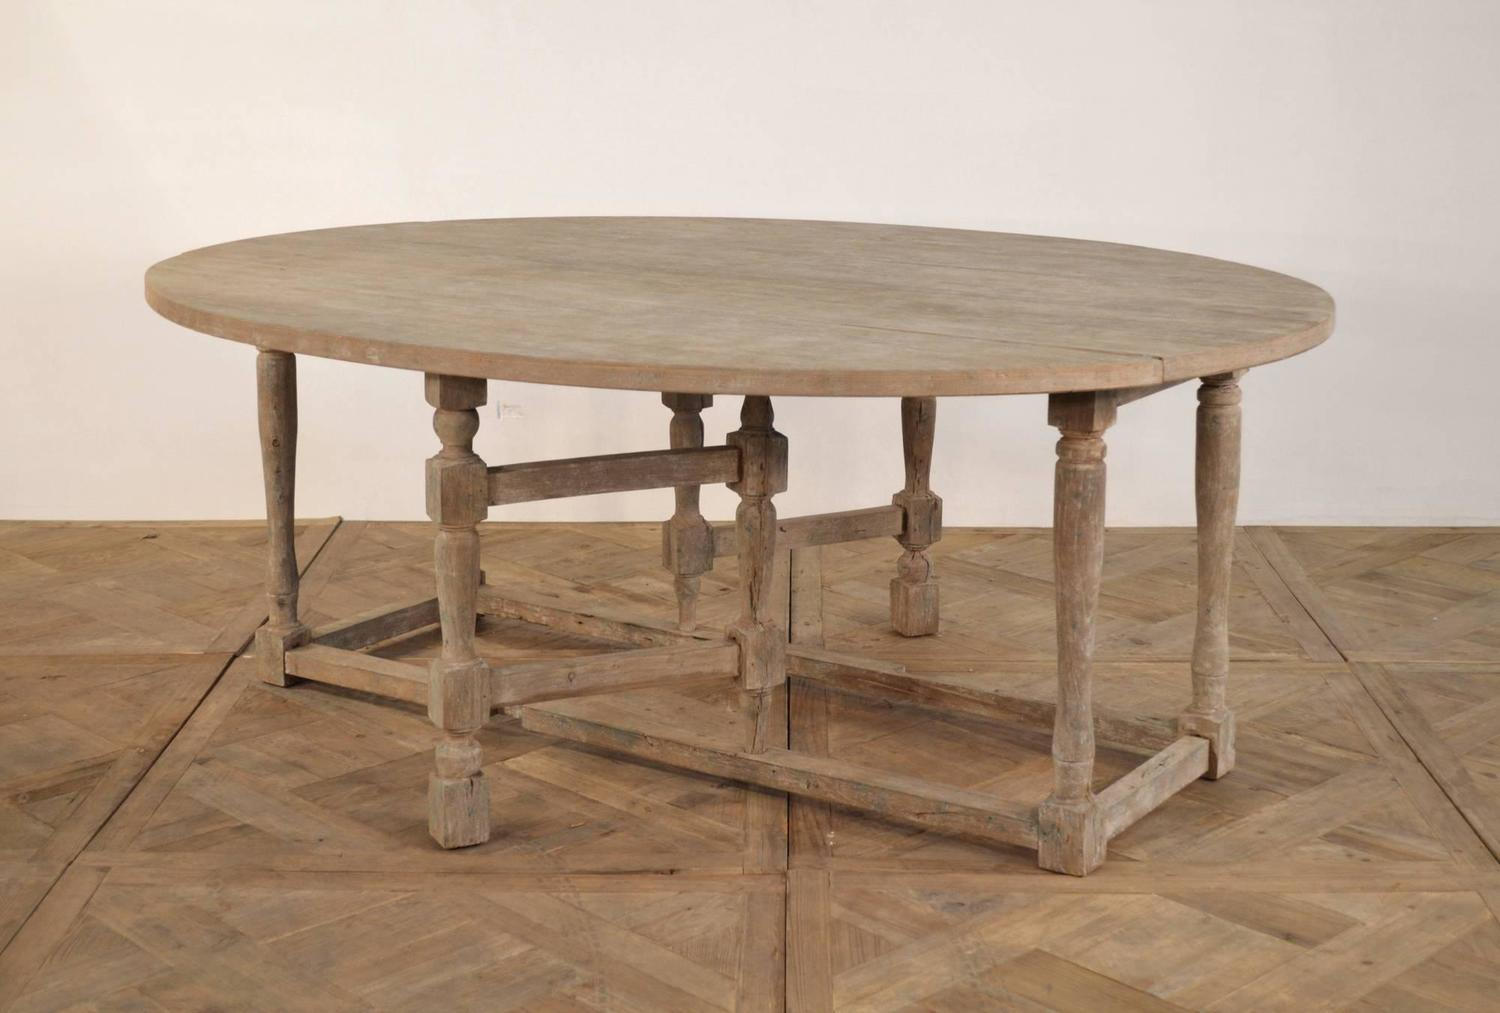 Wood Oval Dining Table For Sale At 1stdibs